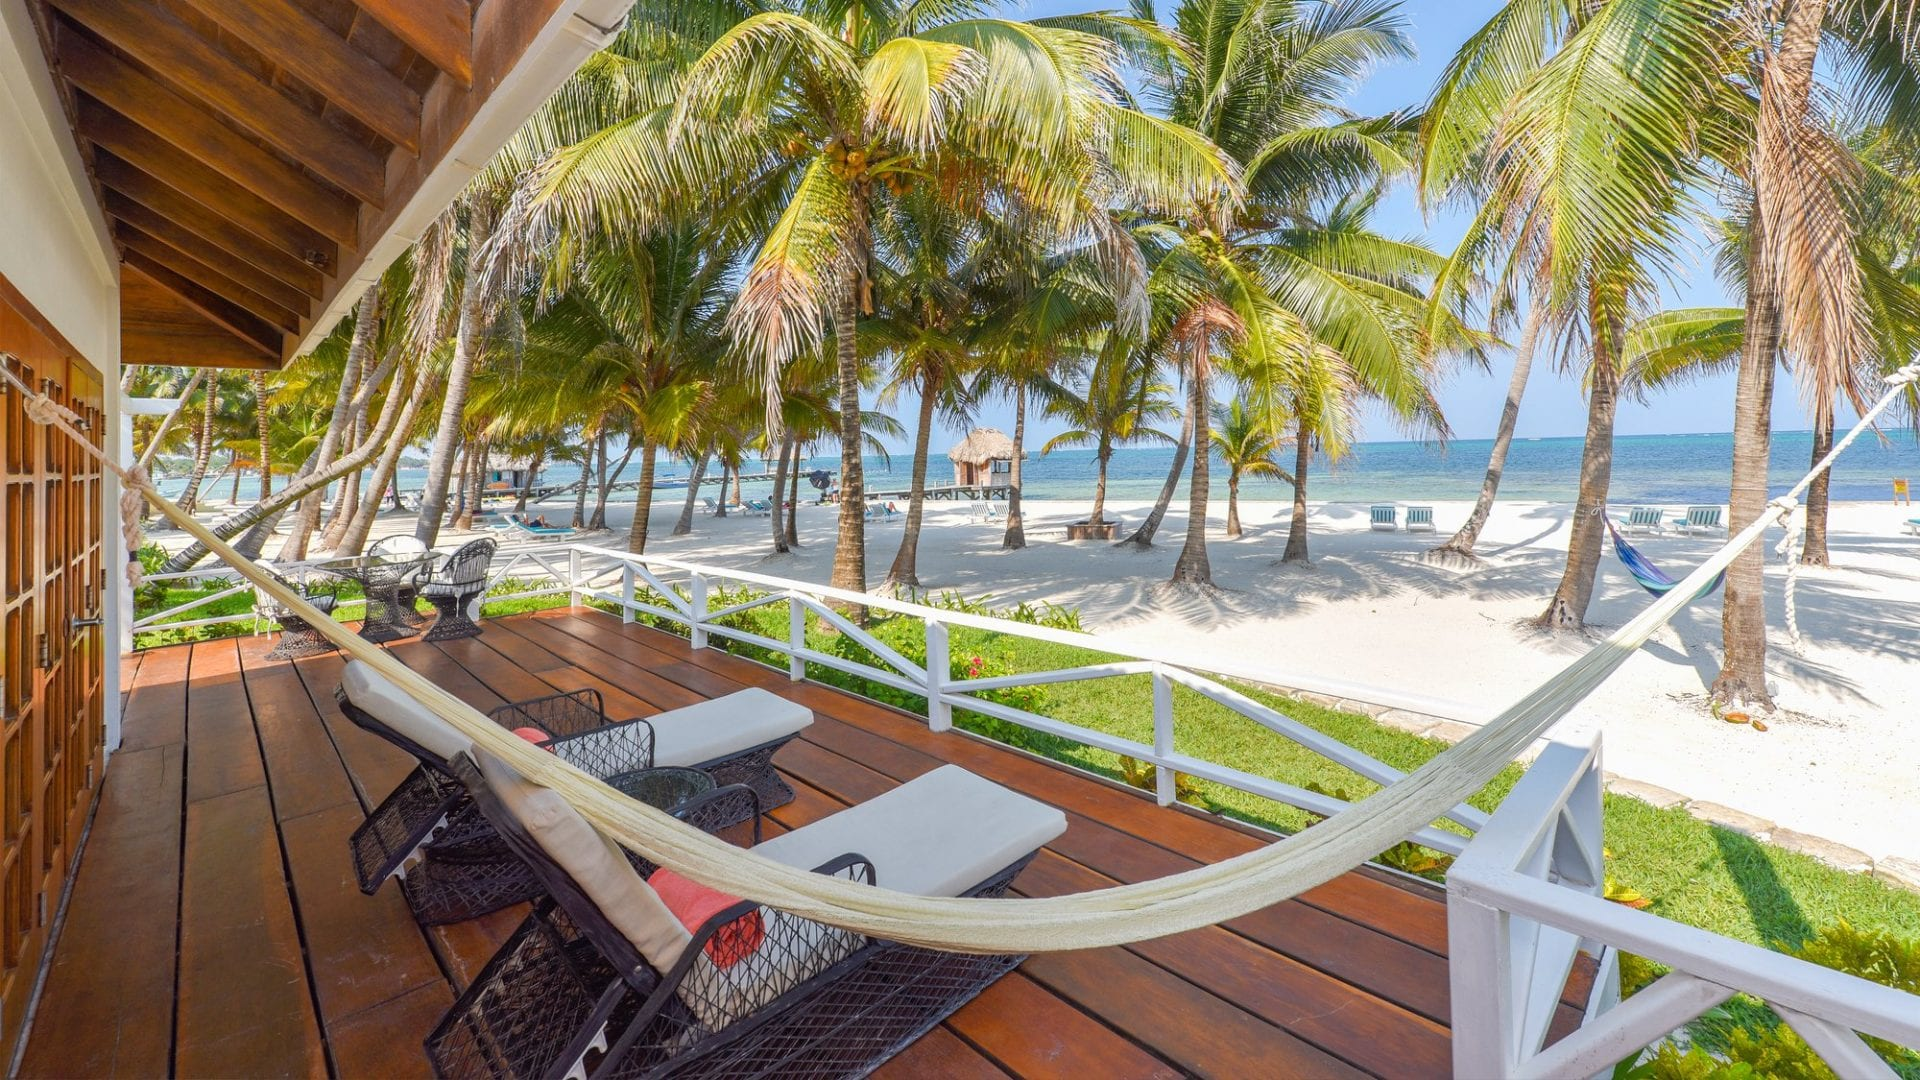 Victoria House Resort & Spa in Ambergris Caye, Belize